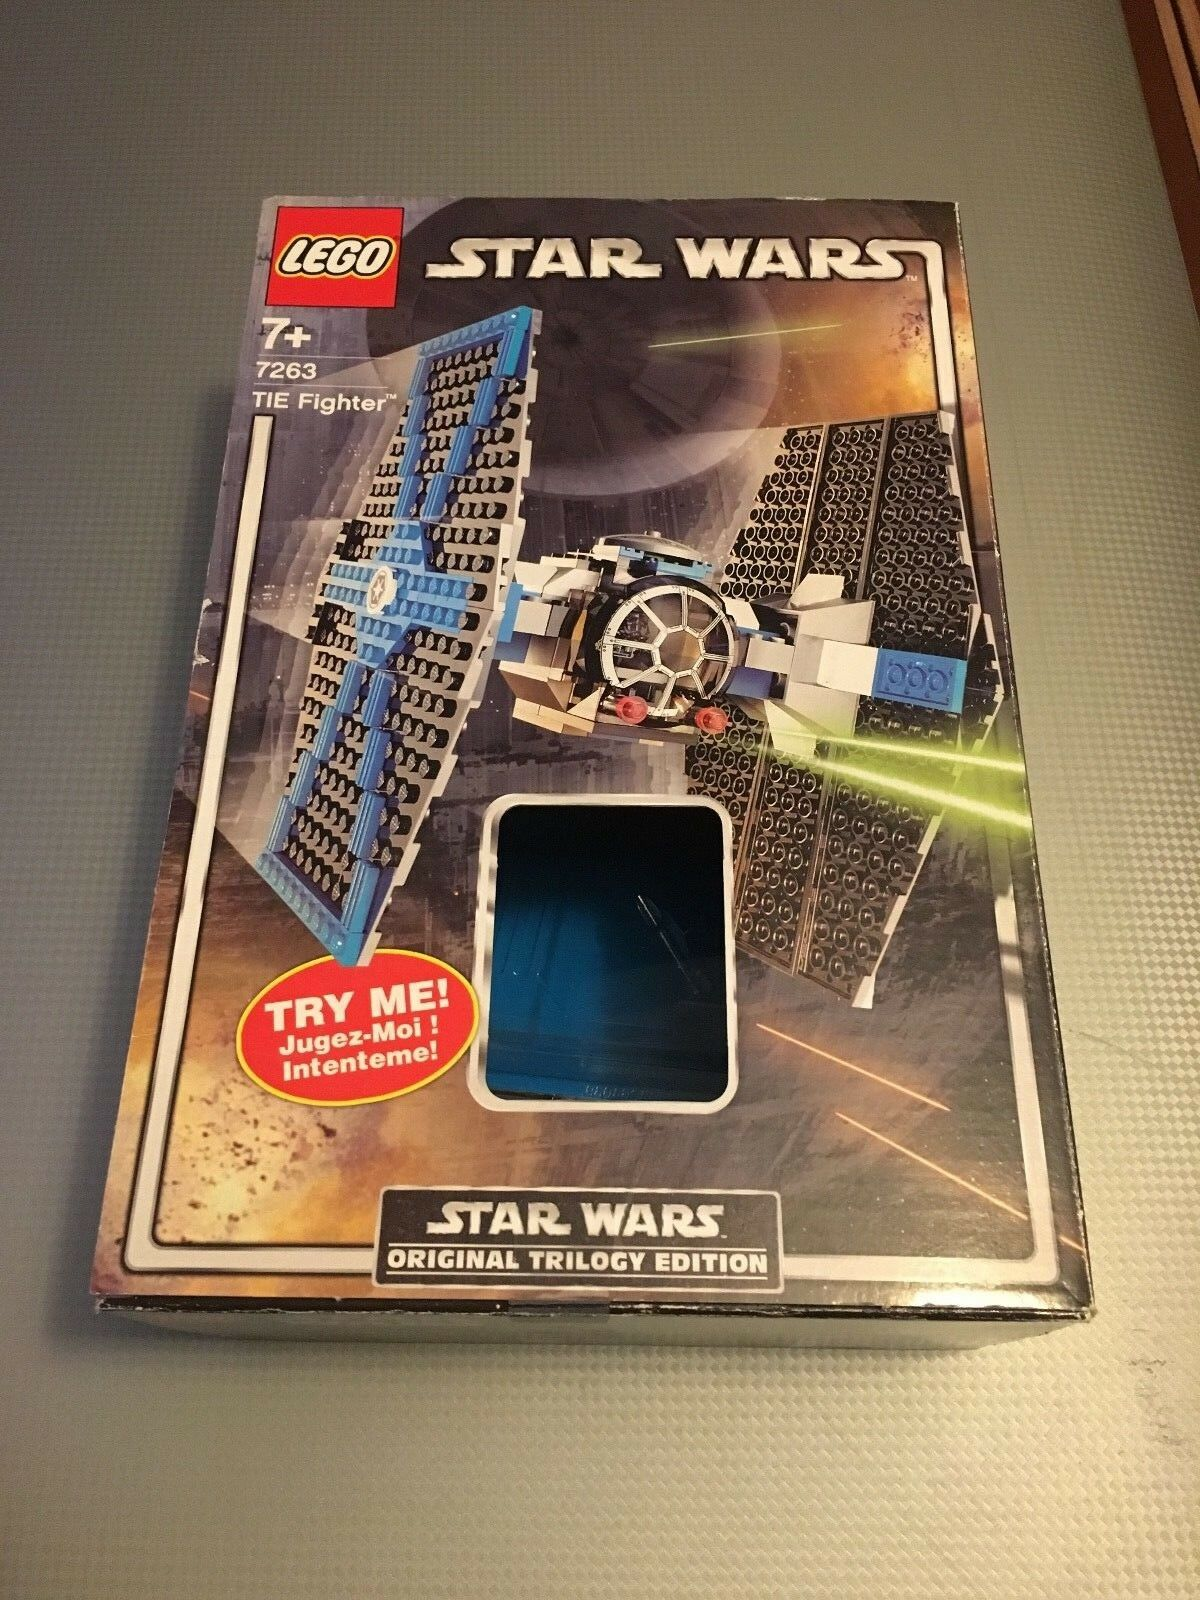 Lego - Star Wars - Tie Fighter - 7263 - Boxed & Complete